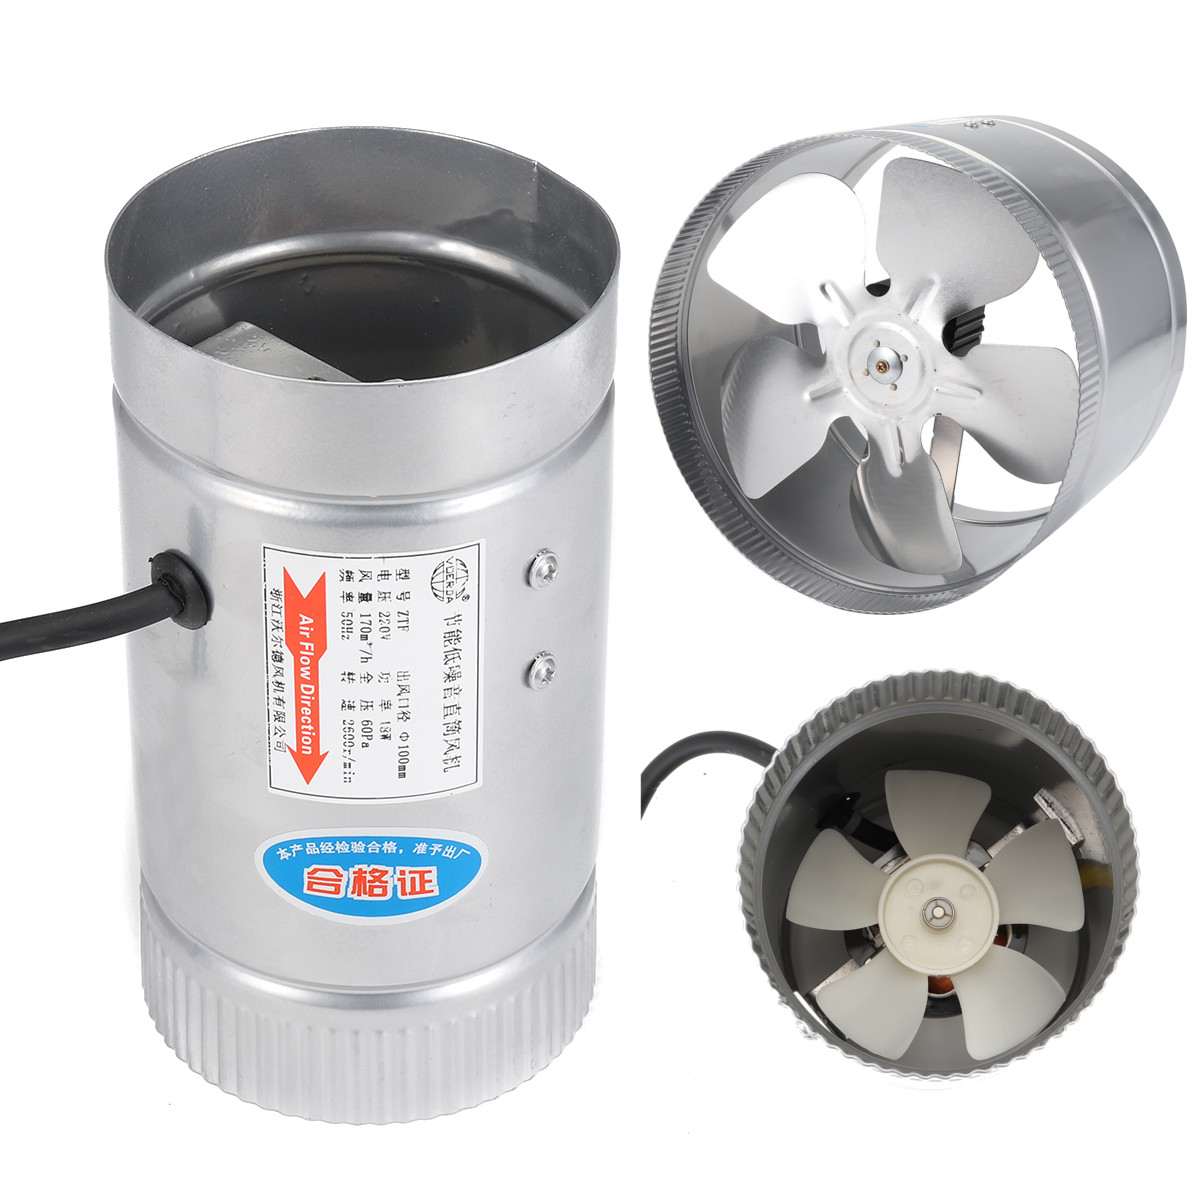 4/6/8/10 Inch Inline Air Ducting Fan Ventilator Metal Booster Fan Blower Intake Out-Take Ventilation Vents For Kitchen Bathroom